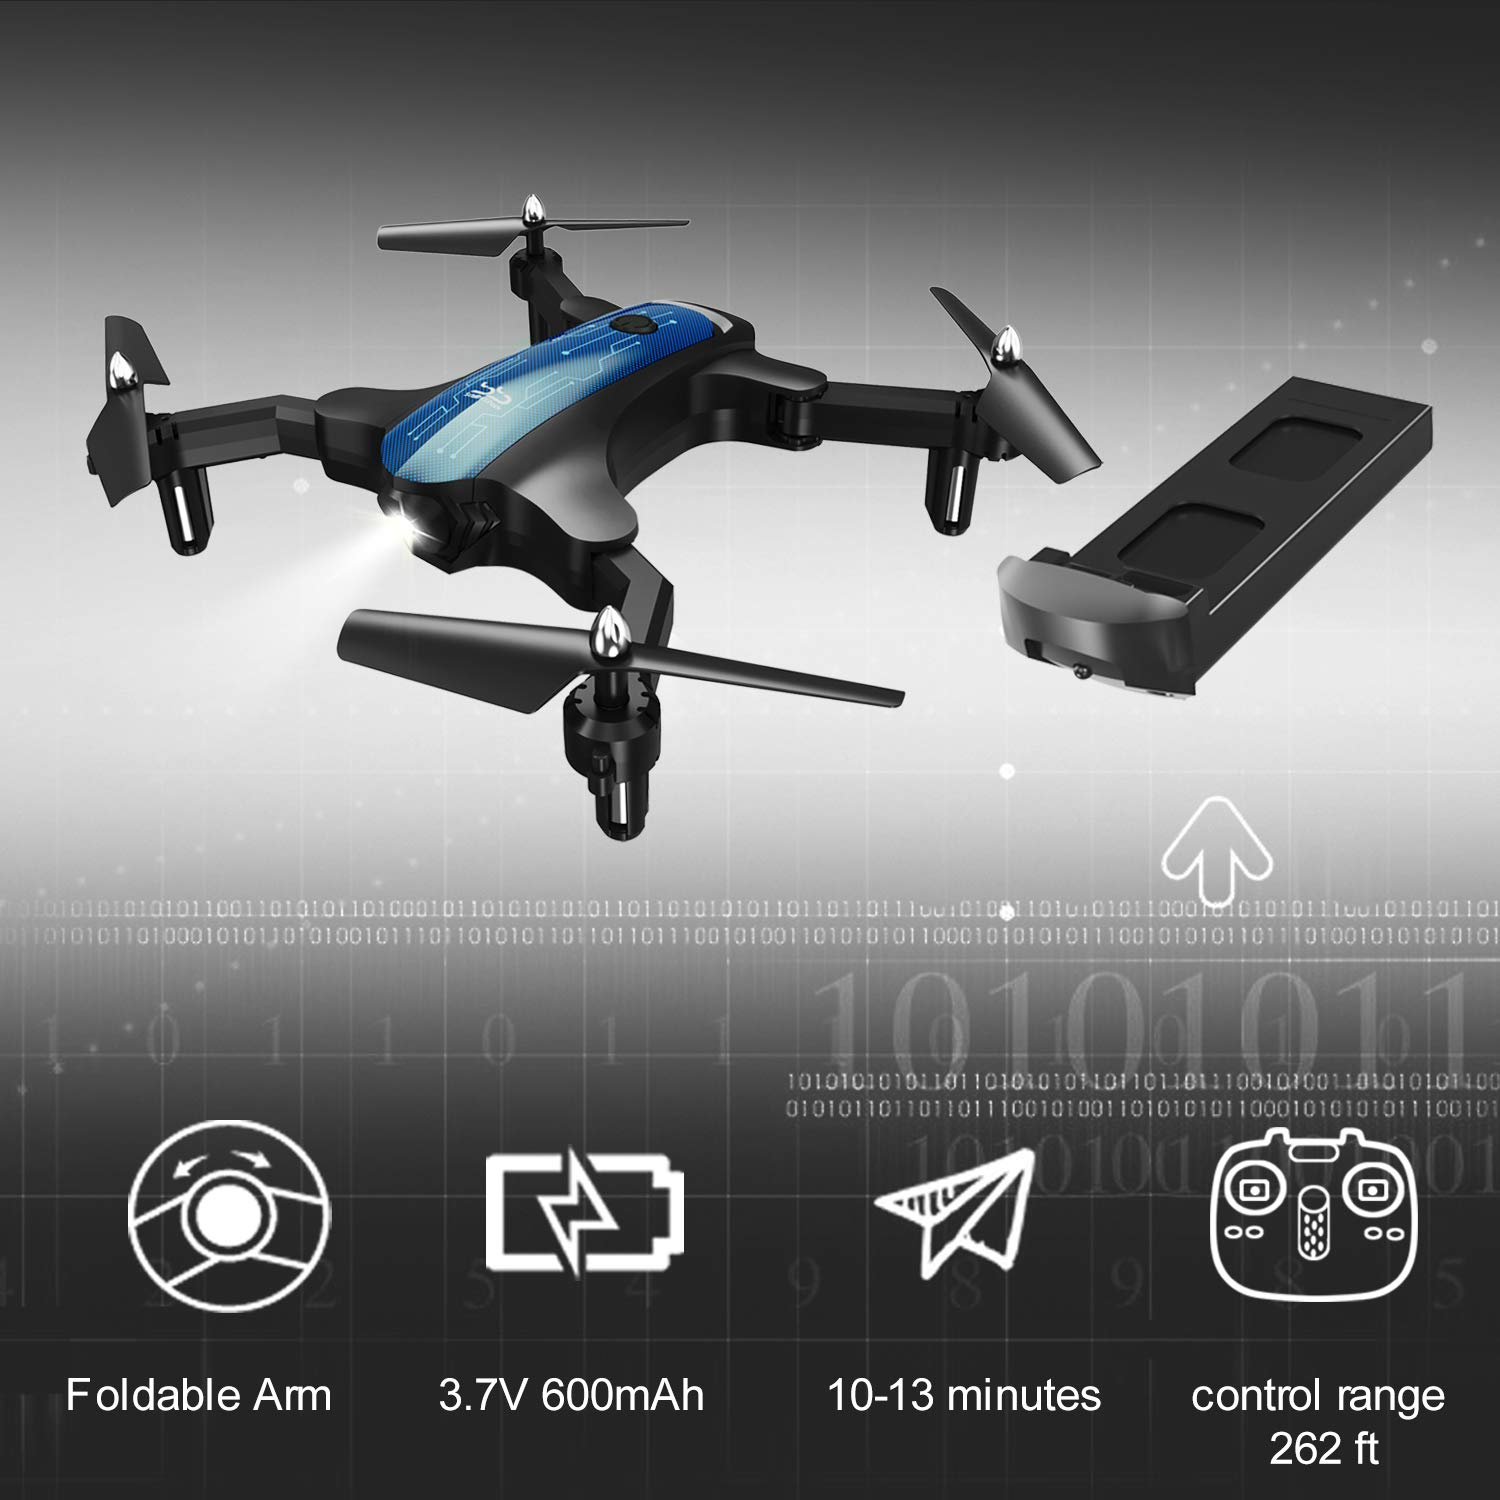 ScharkSpark Drone for Beginners, Portable RC Quadcopter with Foldable Arms Indoor/Outdoor Play, 6-Axis Gyro One-Key Return/Headless Mode/Altitude Hold/3D Flips, Warrior II by ScharkSpark (Image #3)